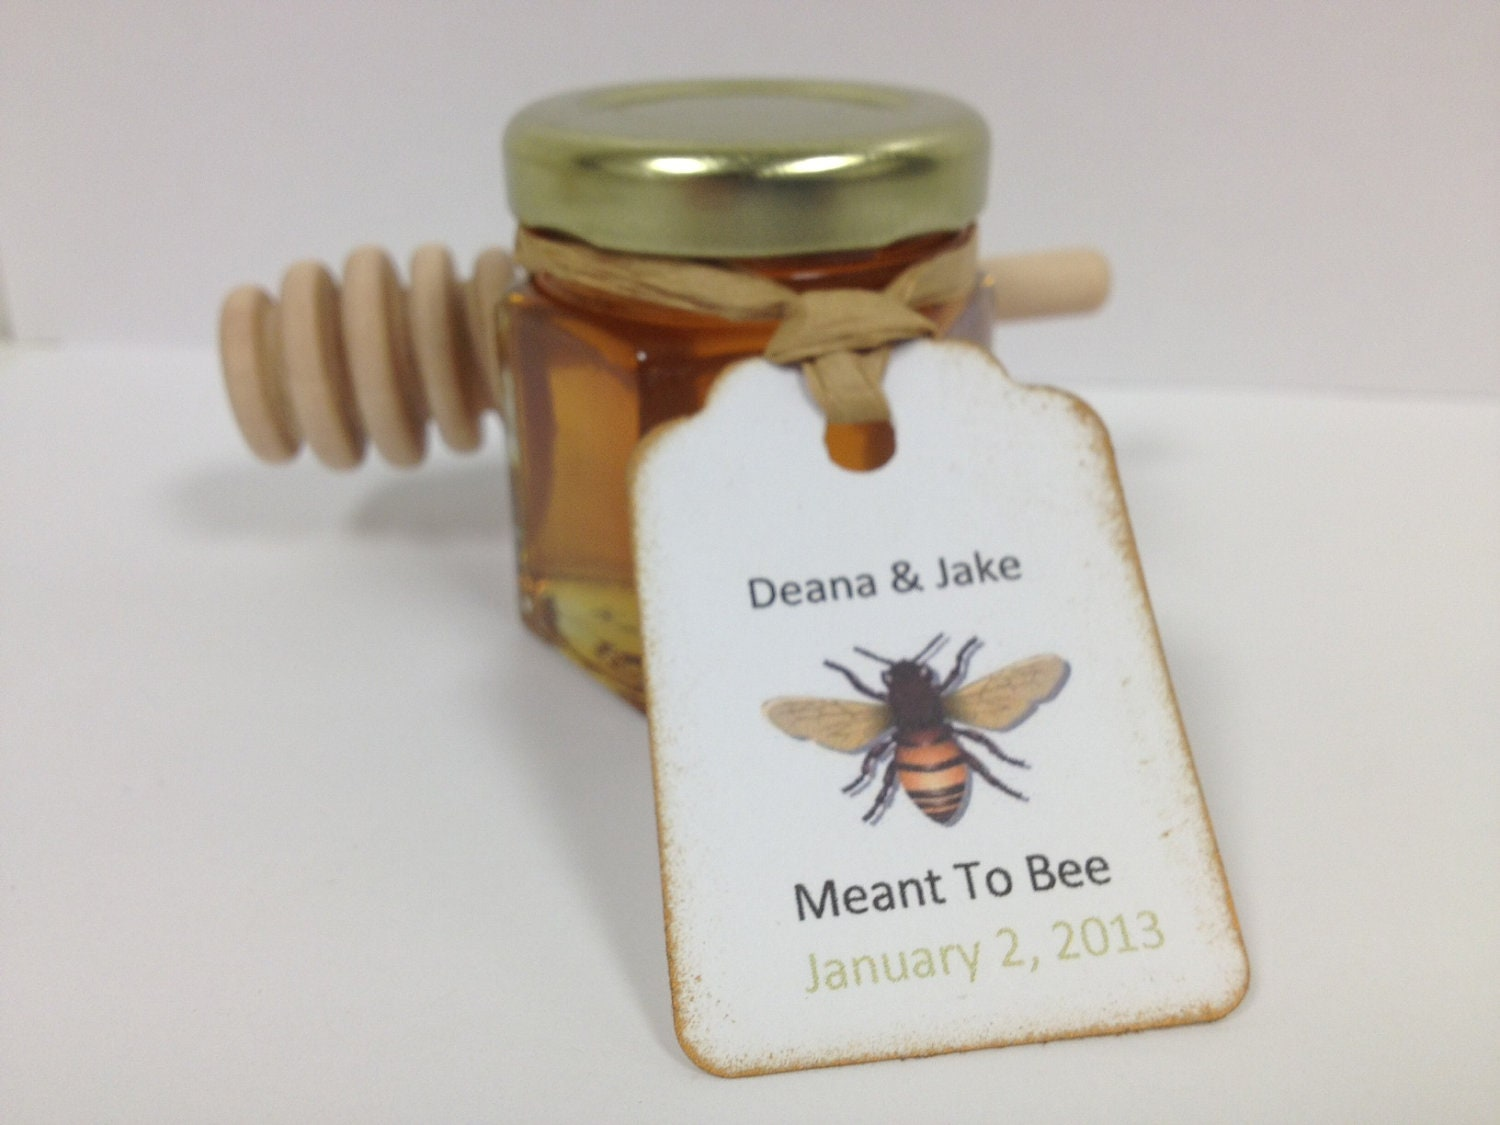 Wedding Favor Honey Tags : favorite favorited like this item add it to your favorites to revisit ...